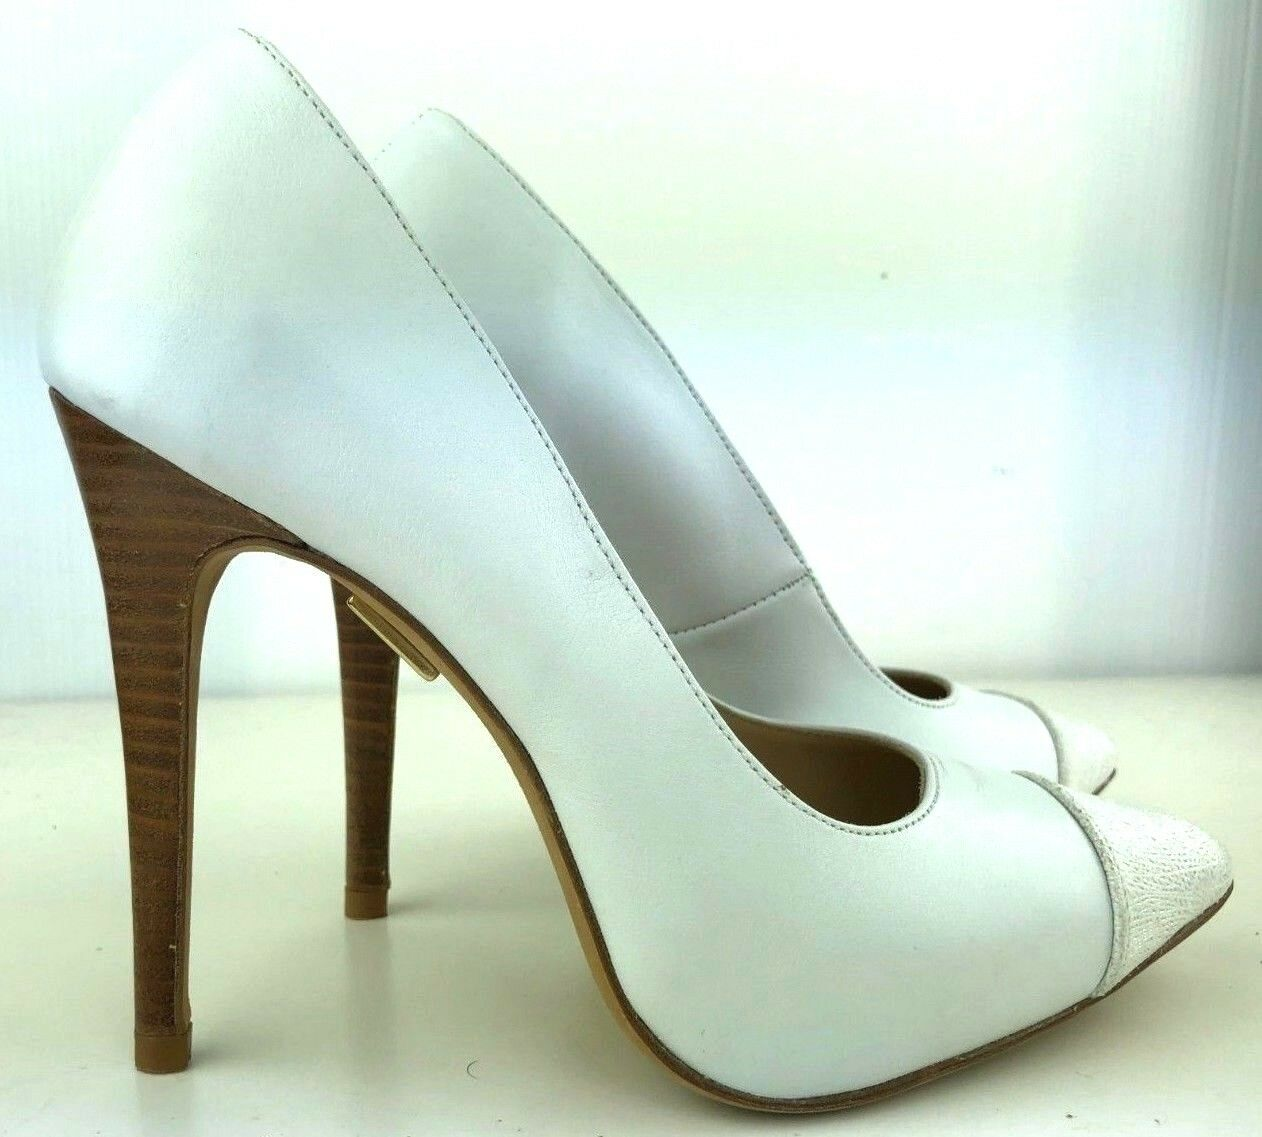 PUMPS ITALY HIGH HIGH HIGH HEELS POINTY TOE zapatos LEATHER DECOLTE SEXY blancoo BIANCO 37  exclusivo